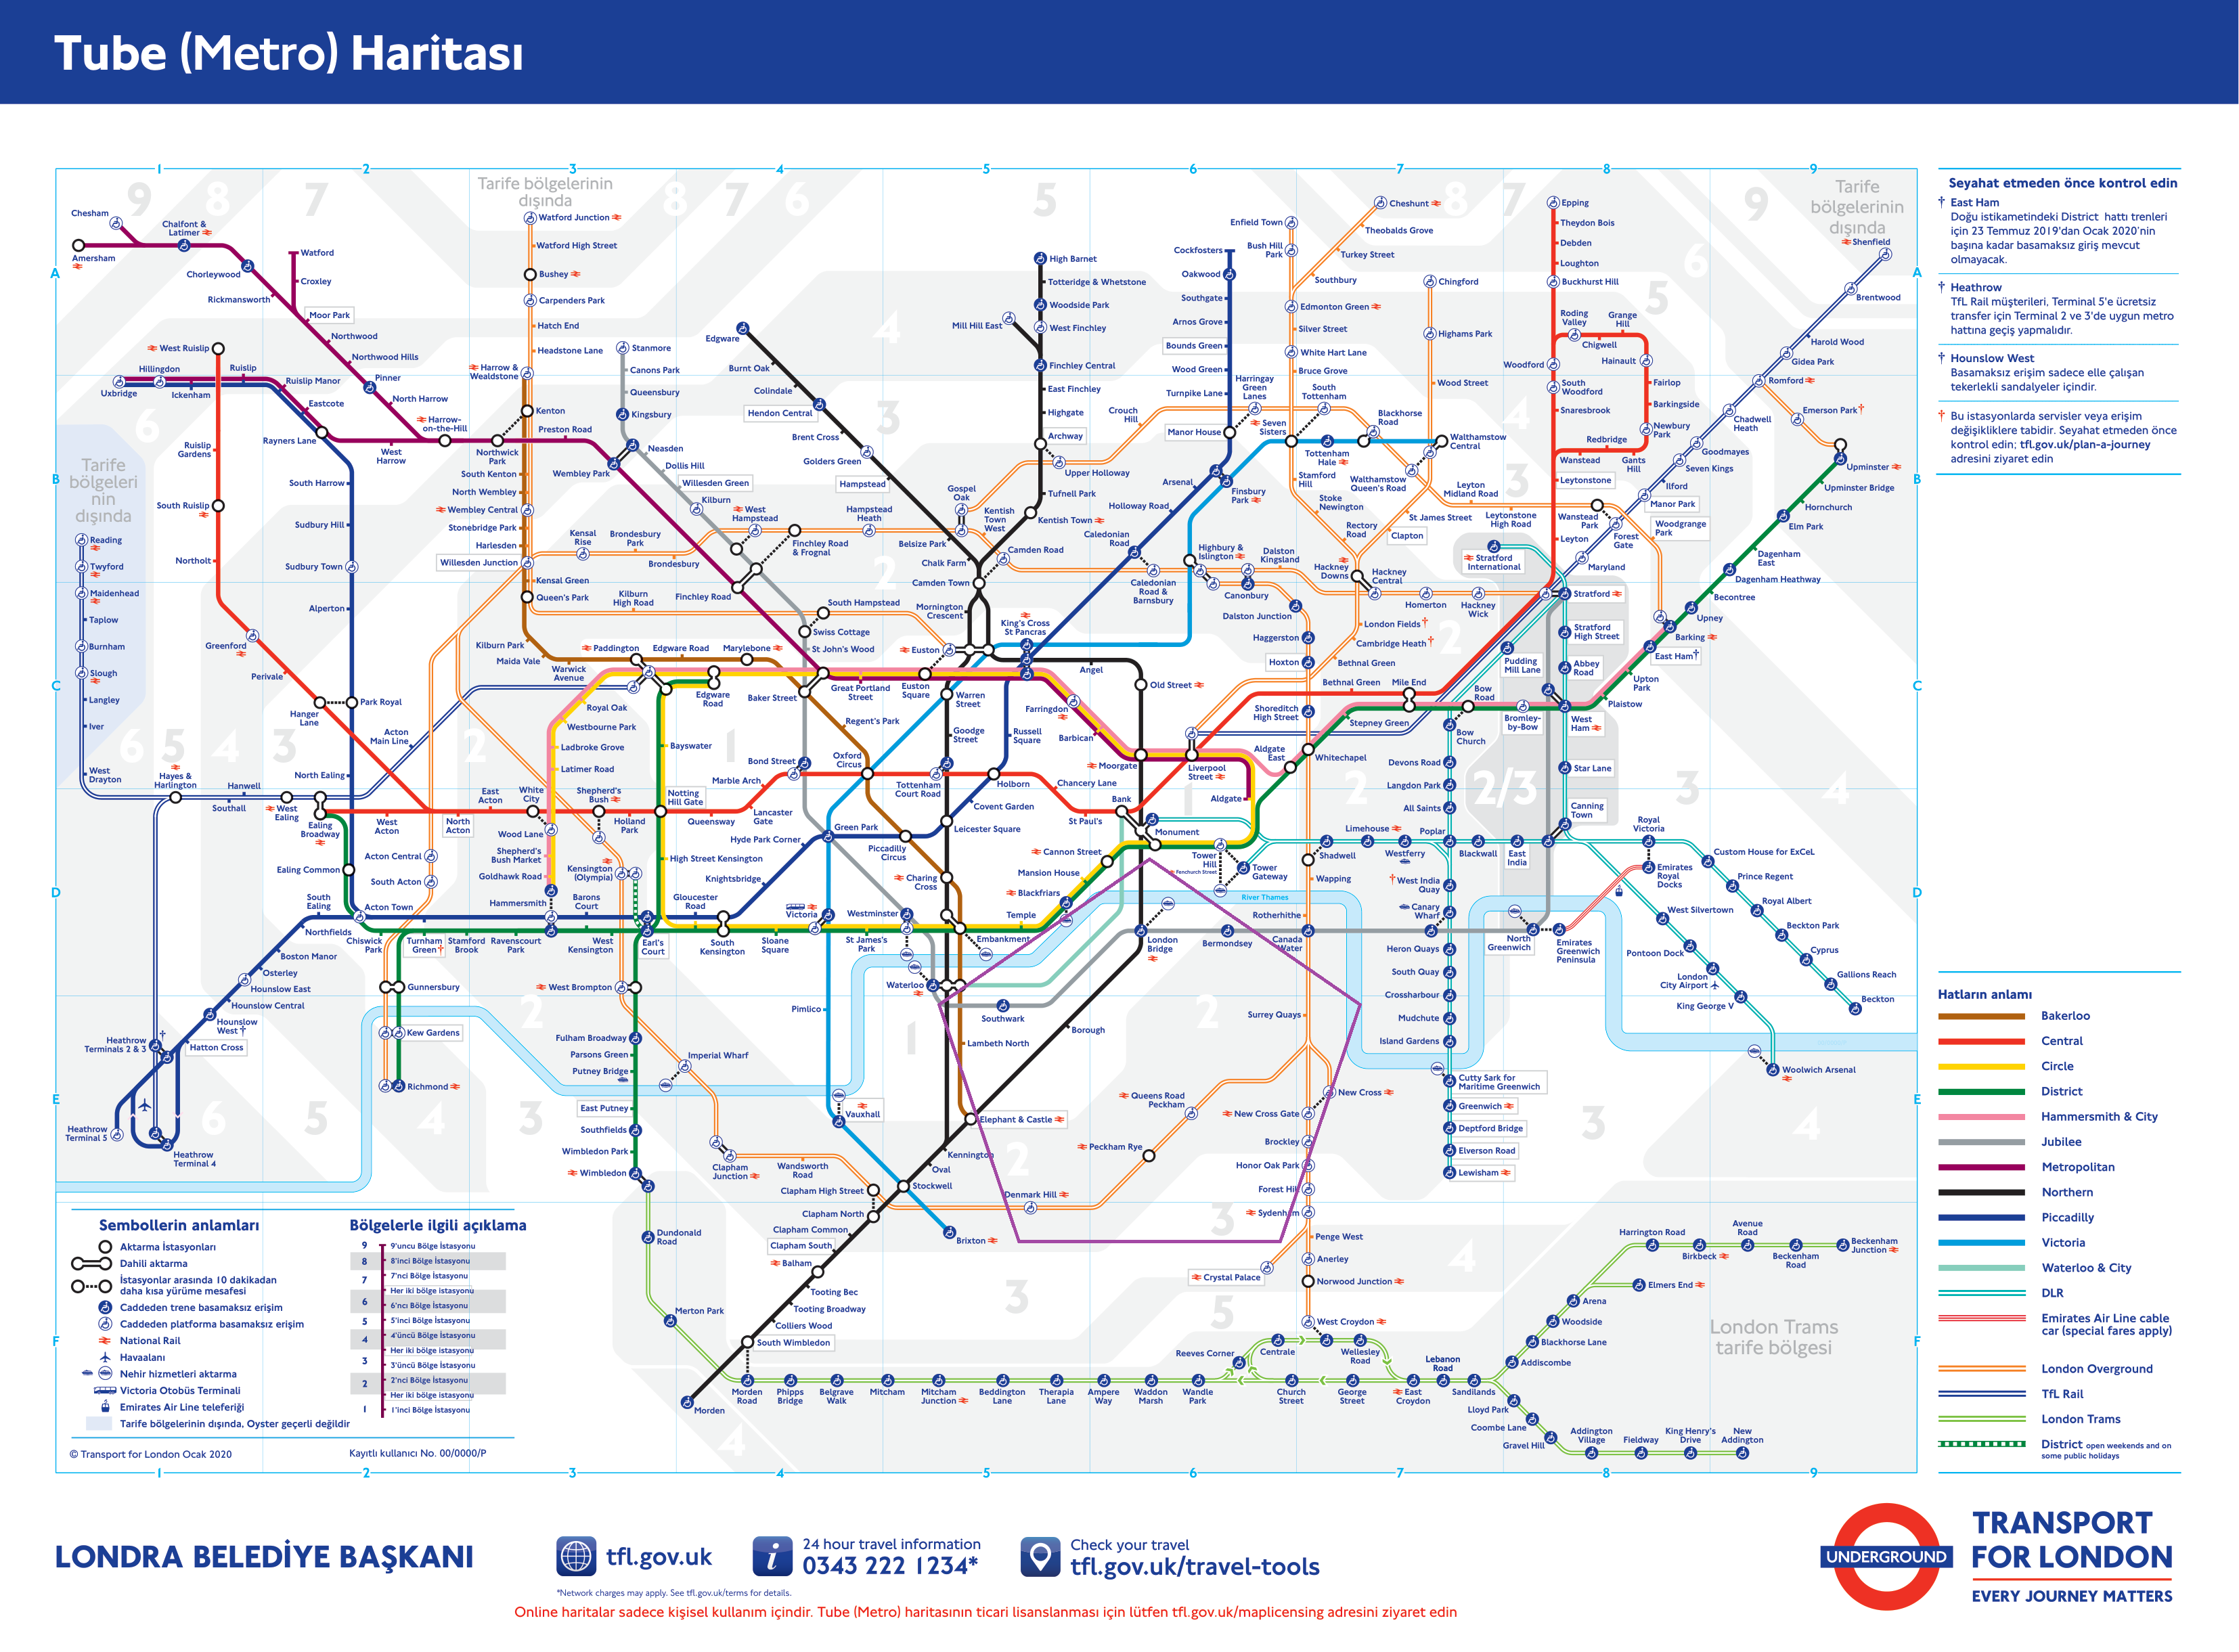 marylebone-paddington transportmap222